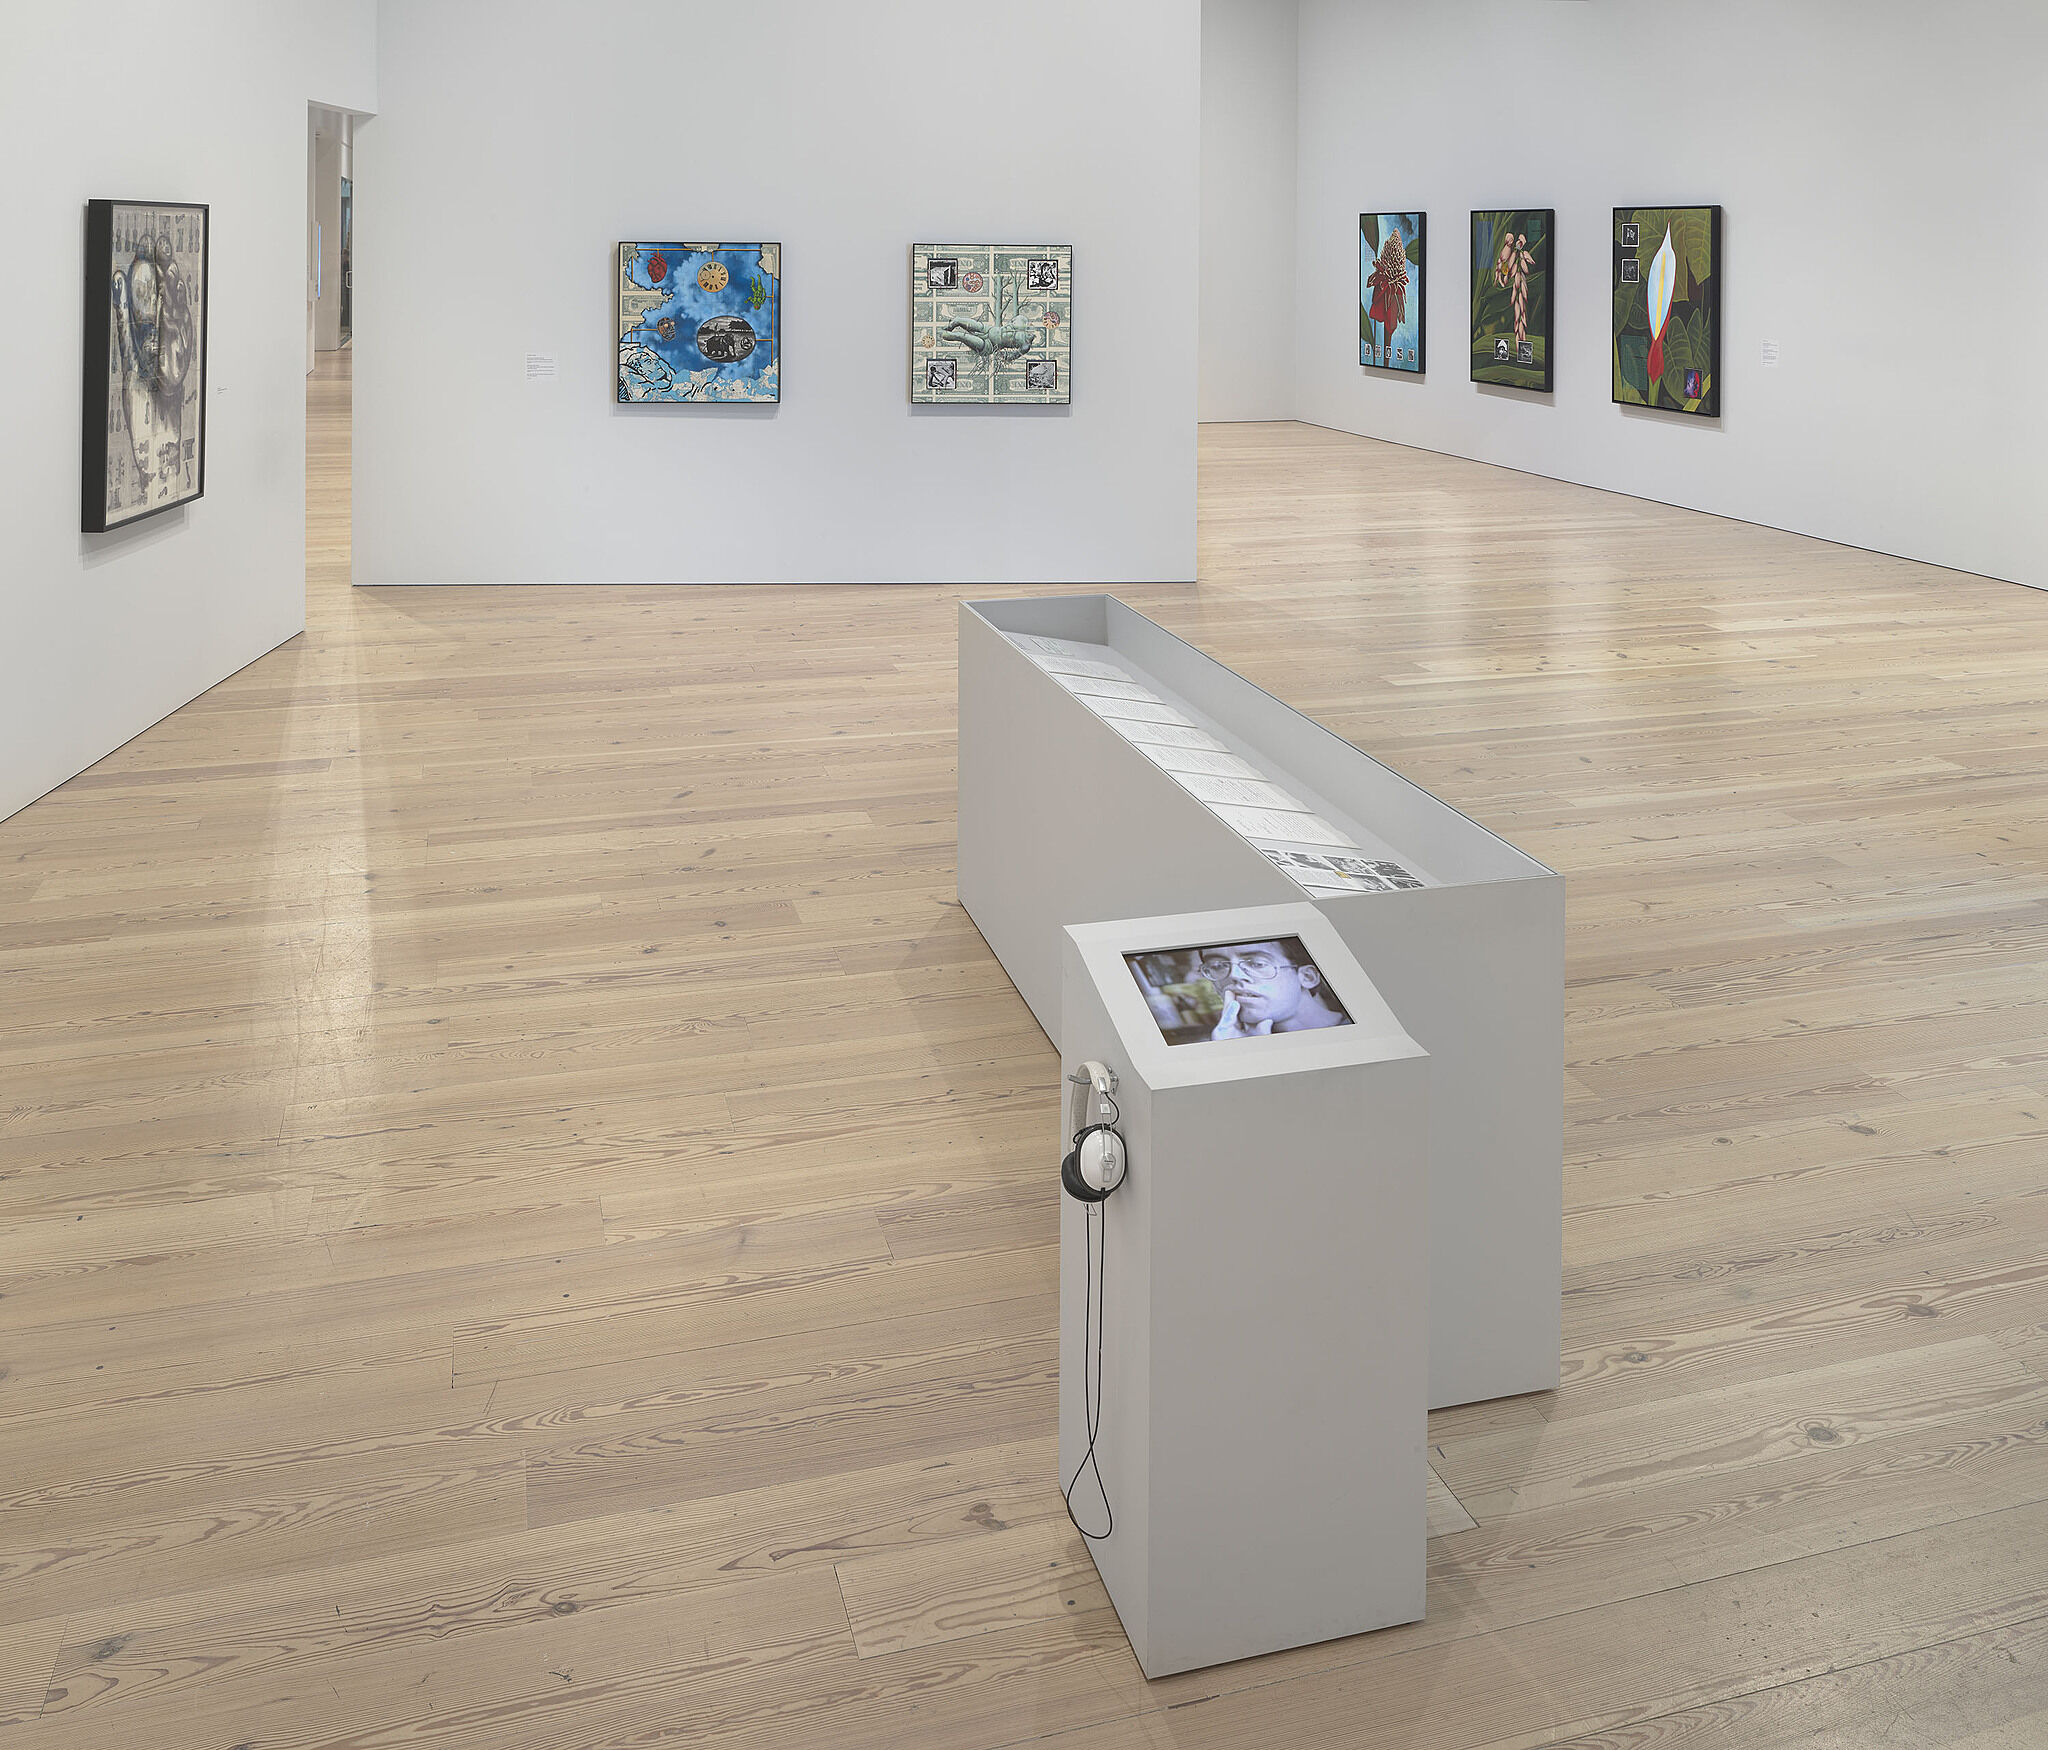 An image of the Whitney galleries with various artworks on the wall and vitrines